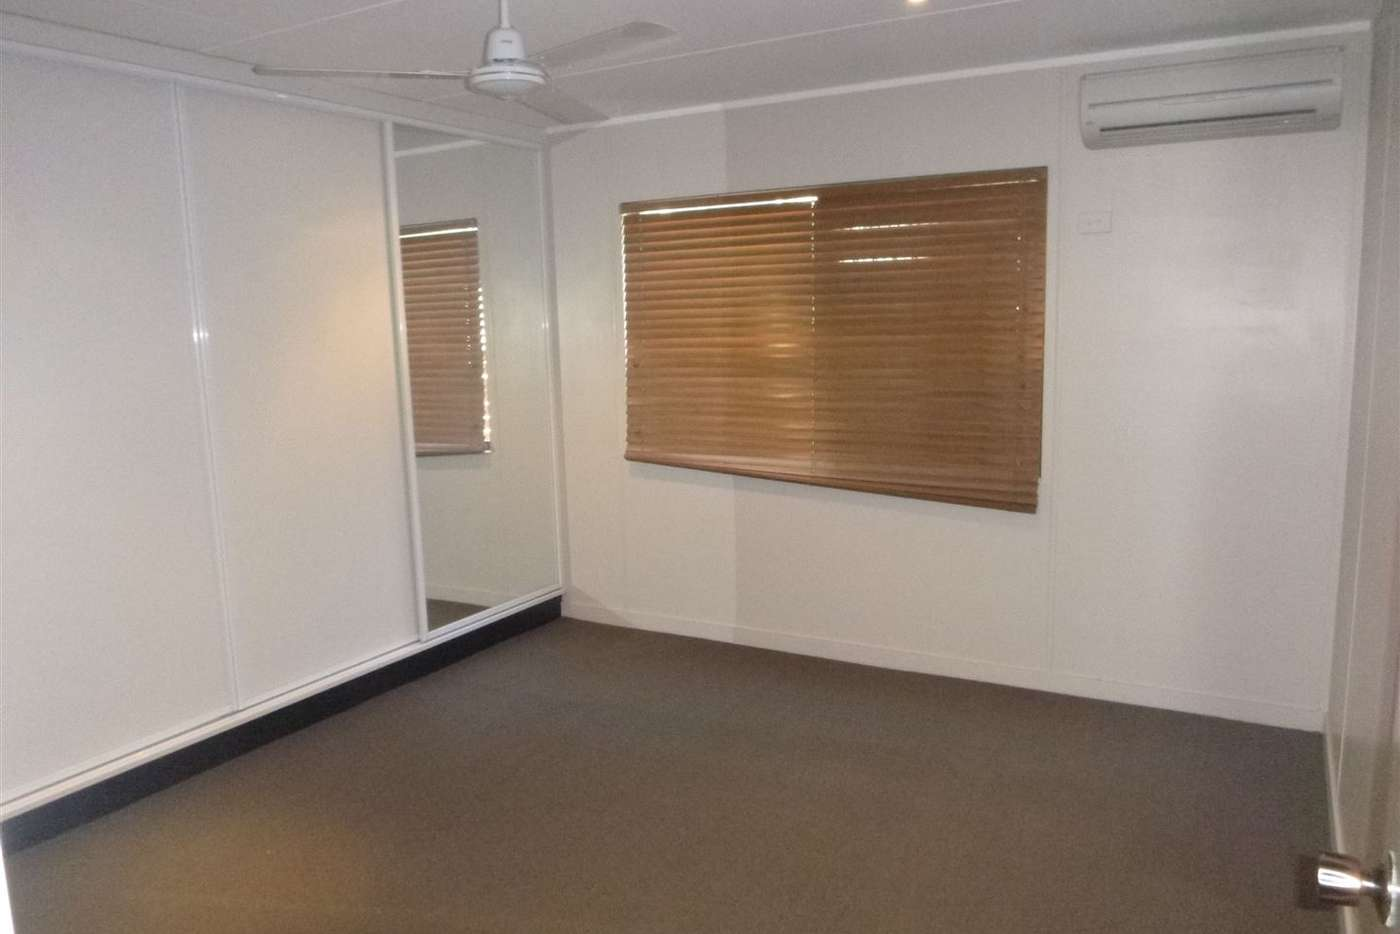 Sixth view of Homely house listing, 1 Strathdee Court, Ayr QLD 4807